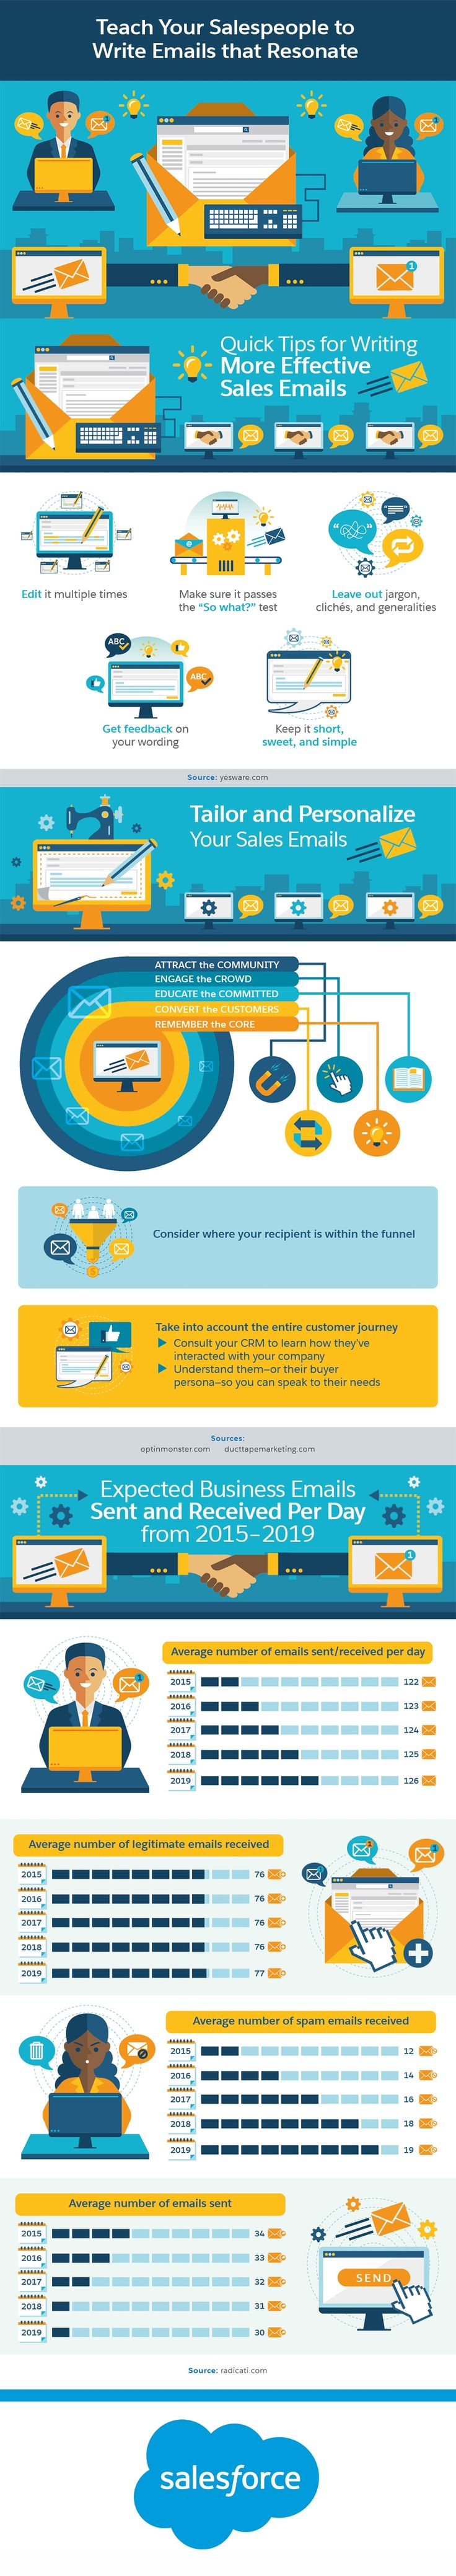 how to teach how to write emails